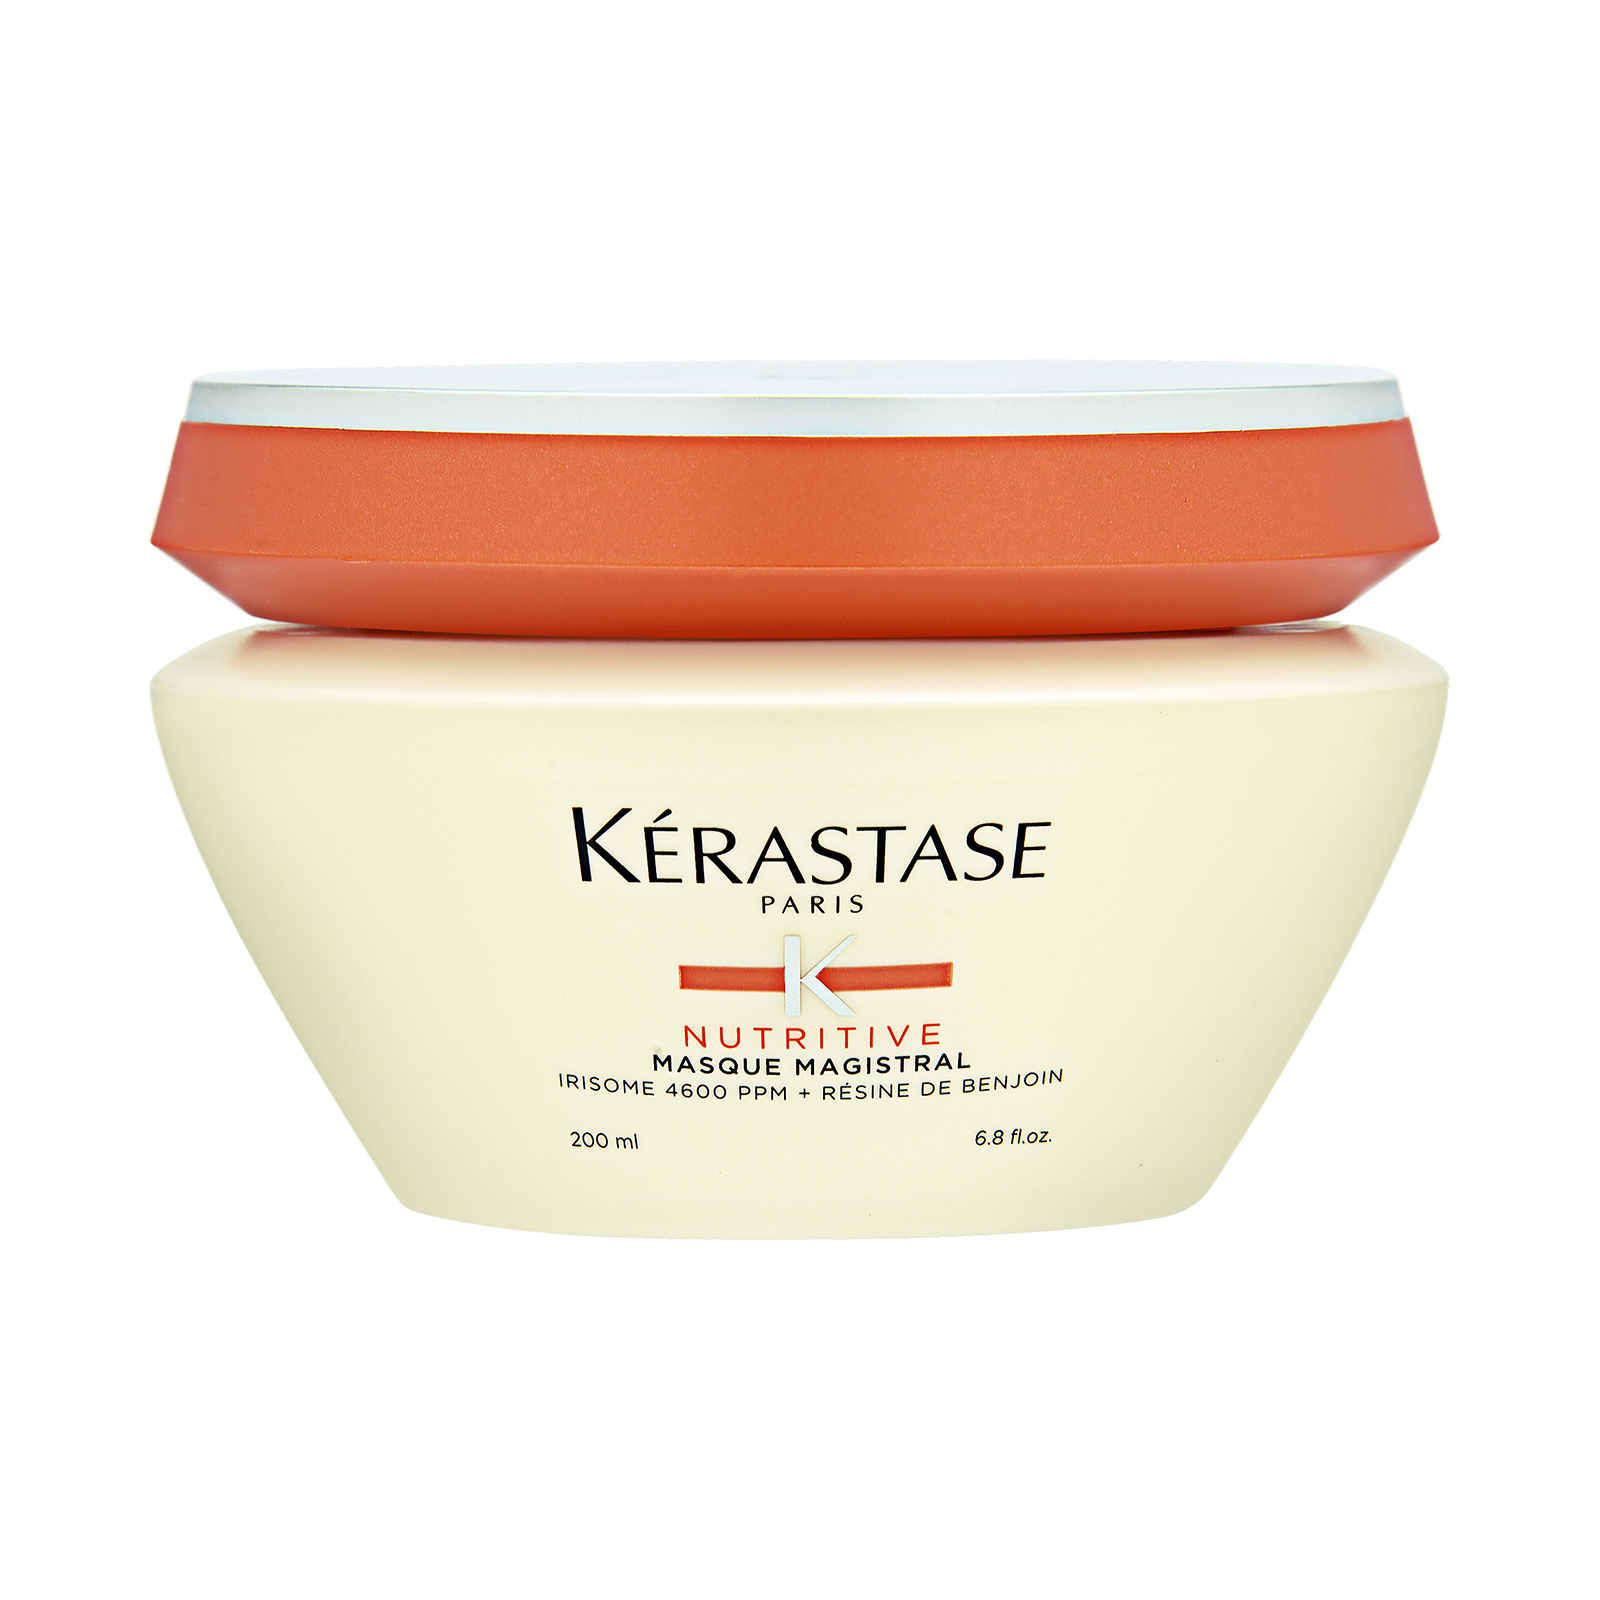 Kérastase Paris Nutritive  Masque Magistral Fundamental Nutrition Masque (Severely Dired-Out Hair) 6.8oz, 200ml